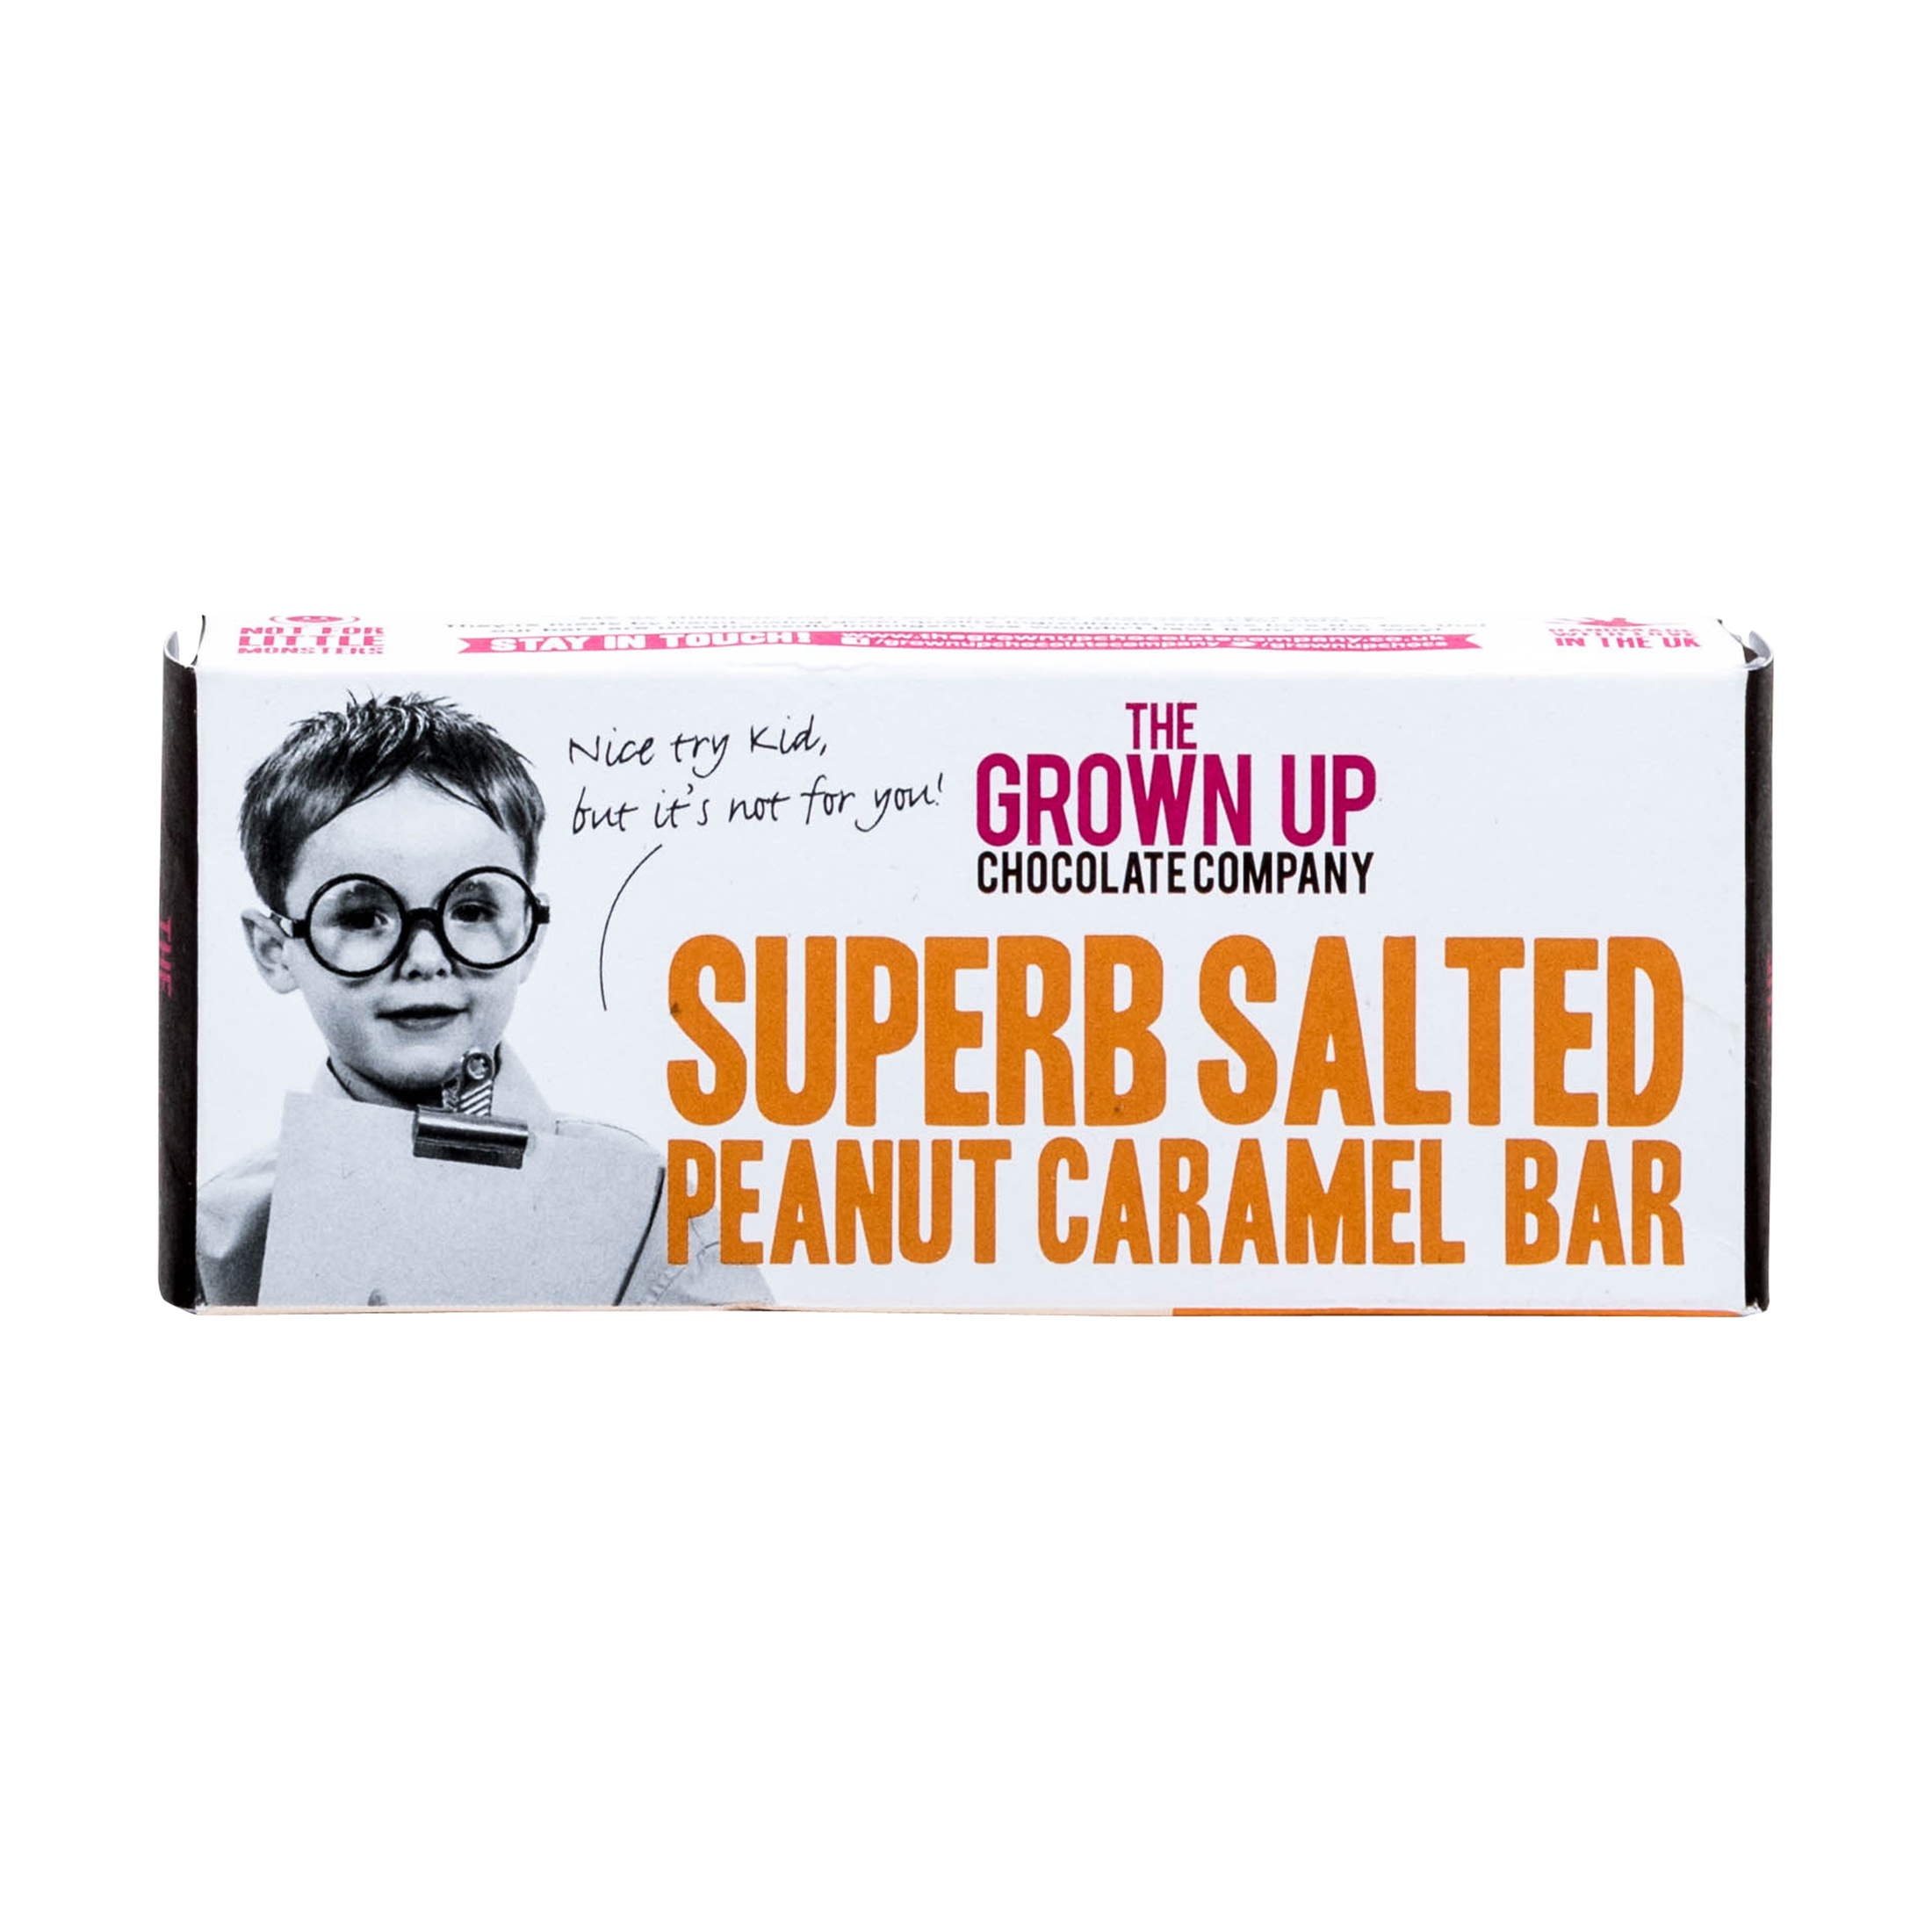 SUPERB SALTED PEANUT CARMEL 2 BARS